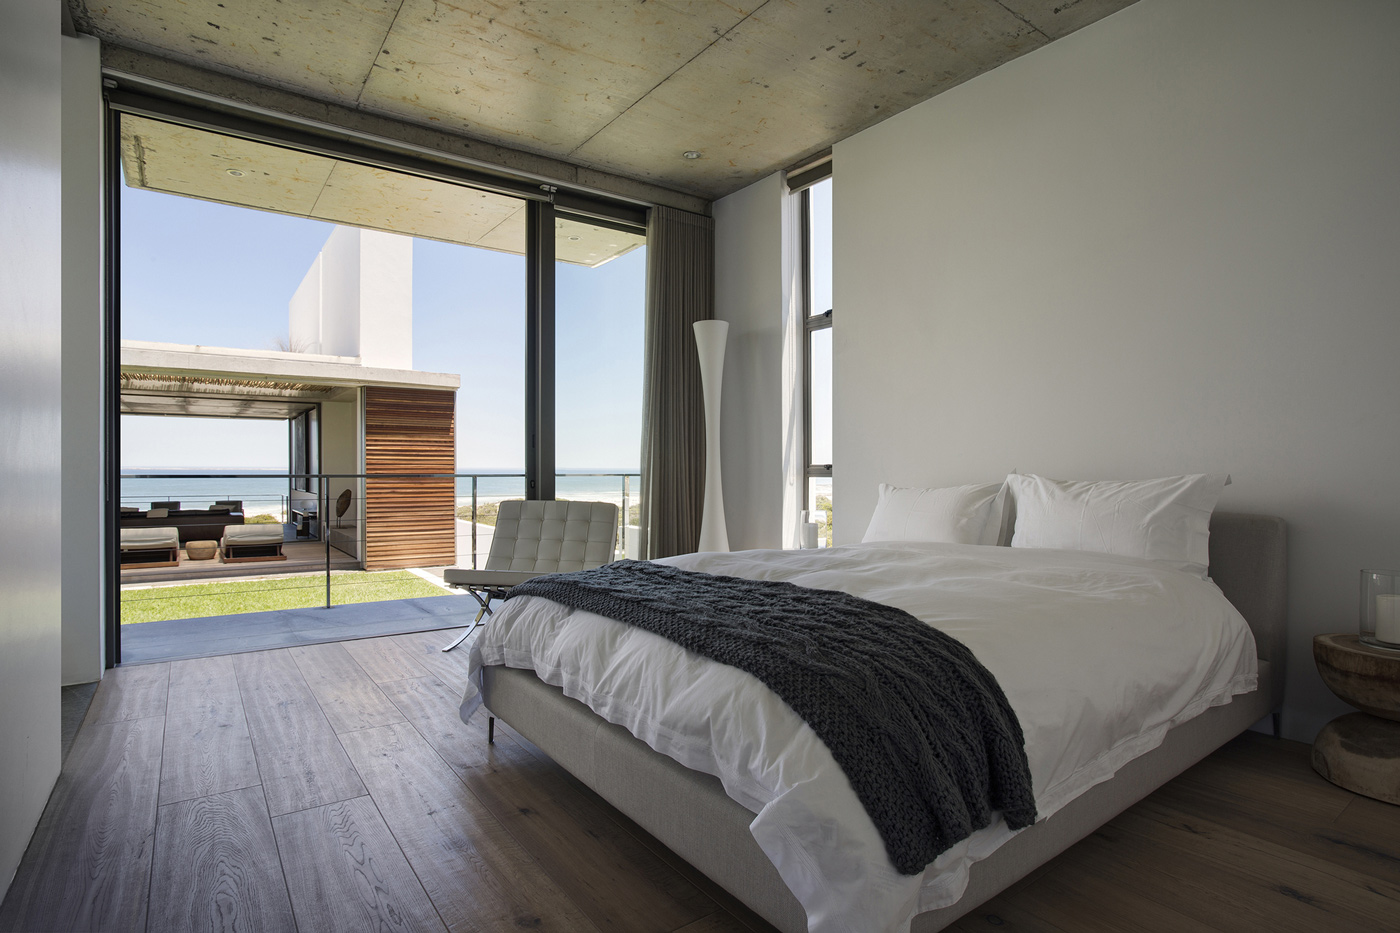 Bedroom, Balcony, Holiday Home in Yzerfontein, South Africa